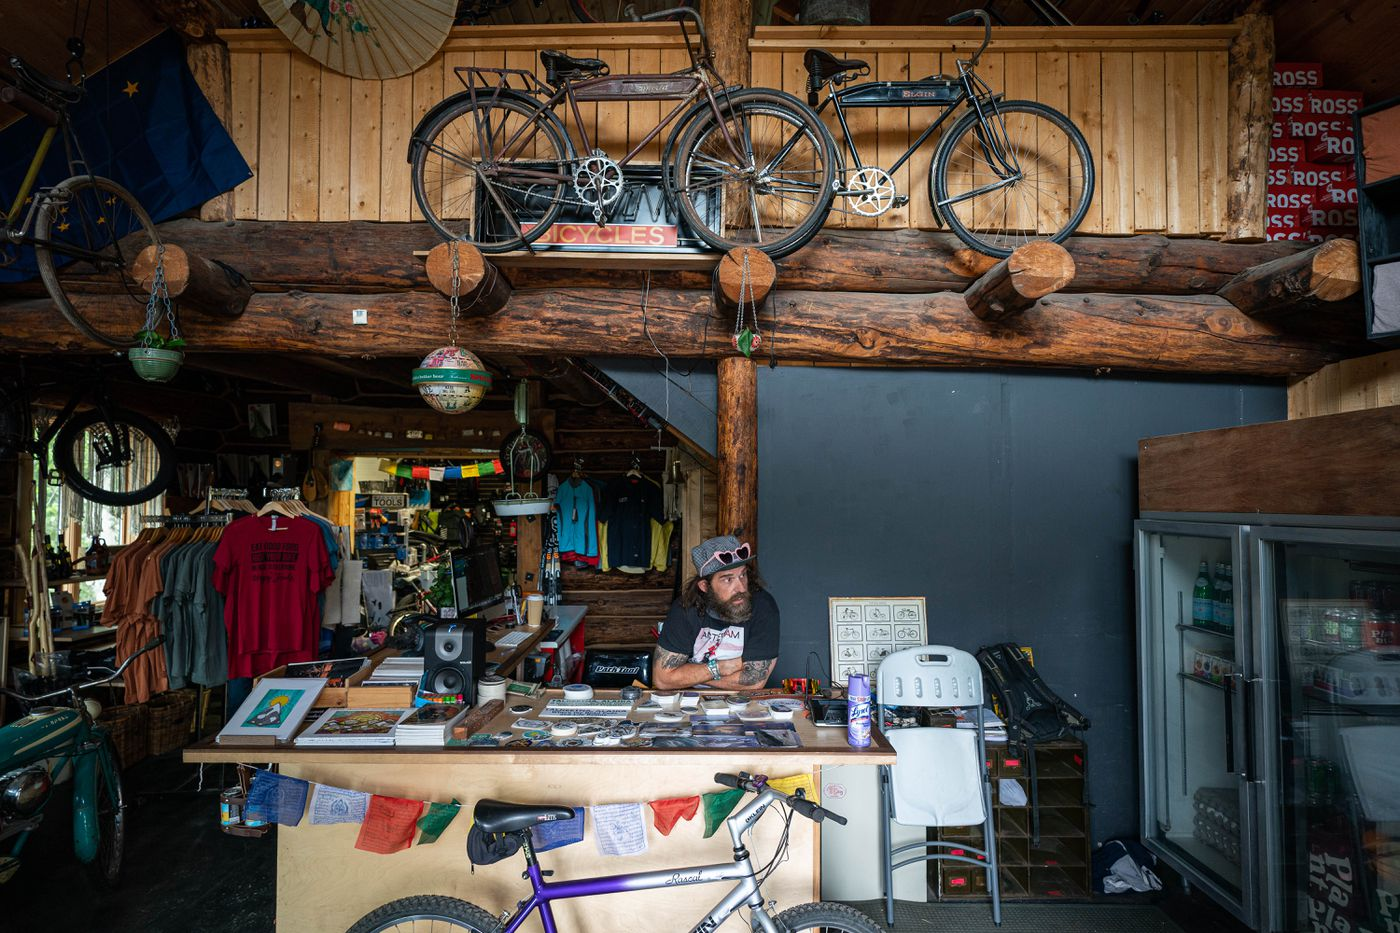 North Shore Cyclery owner Shawn Thelen sits at the counter in his bicycle shop on Thursday, May 21, 2020 in Talkeetna. (Loren Holmes / ADN)